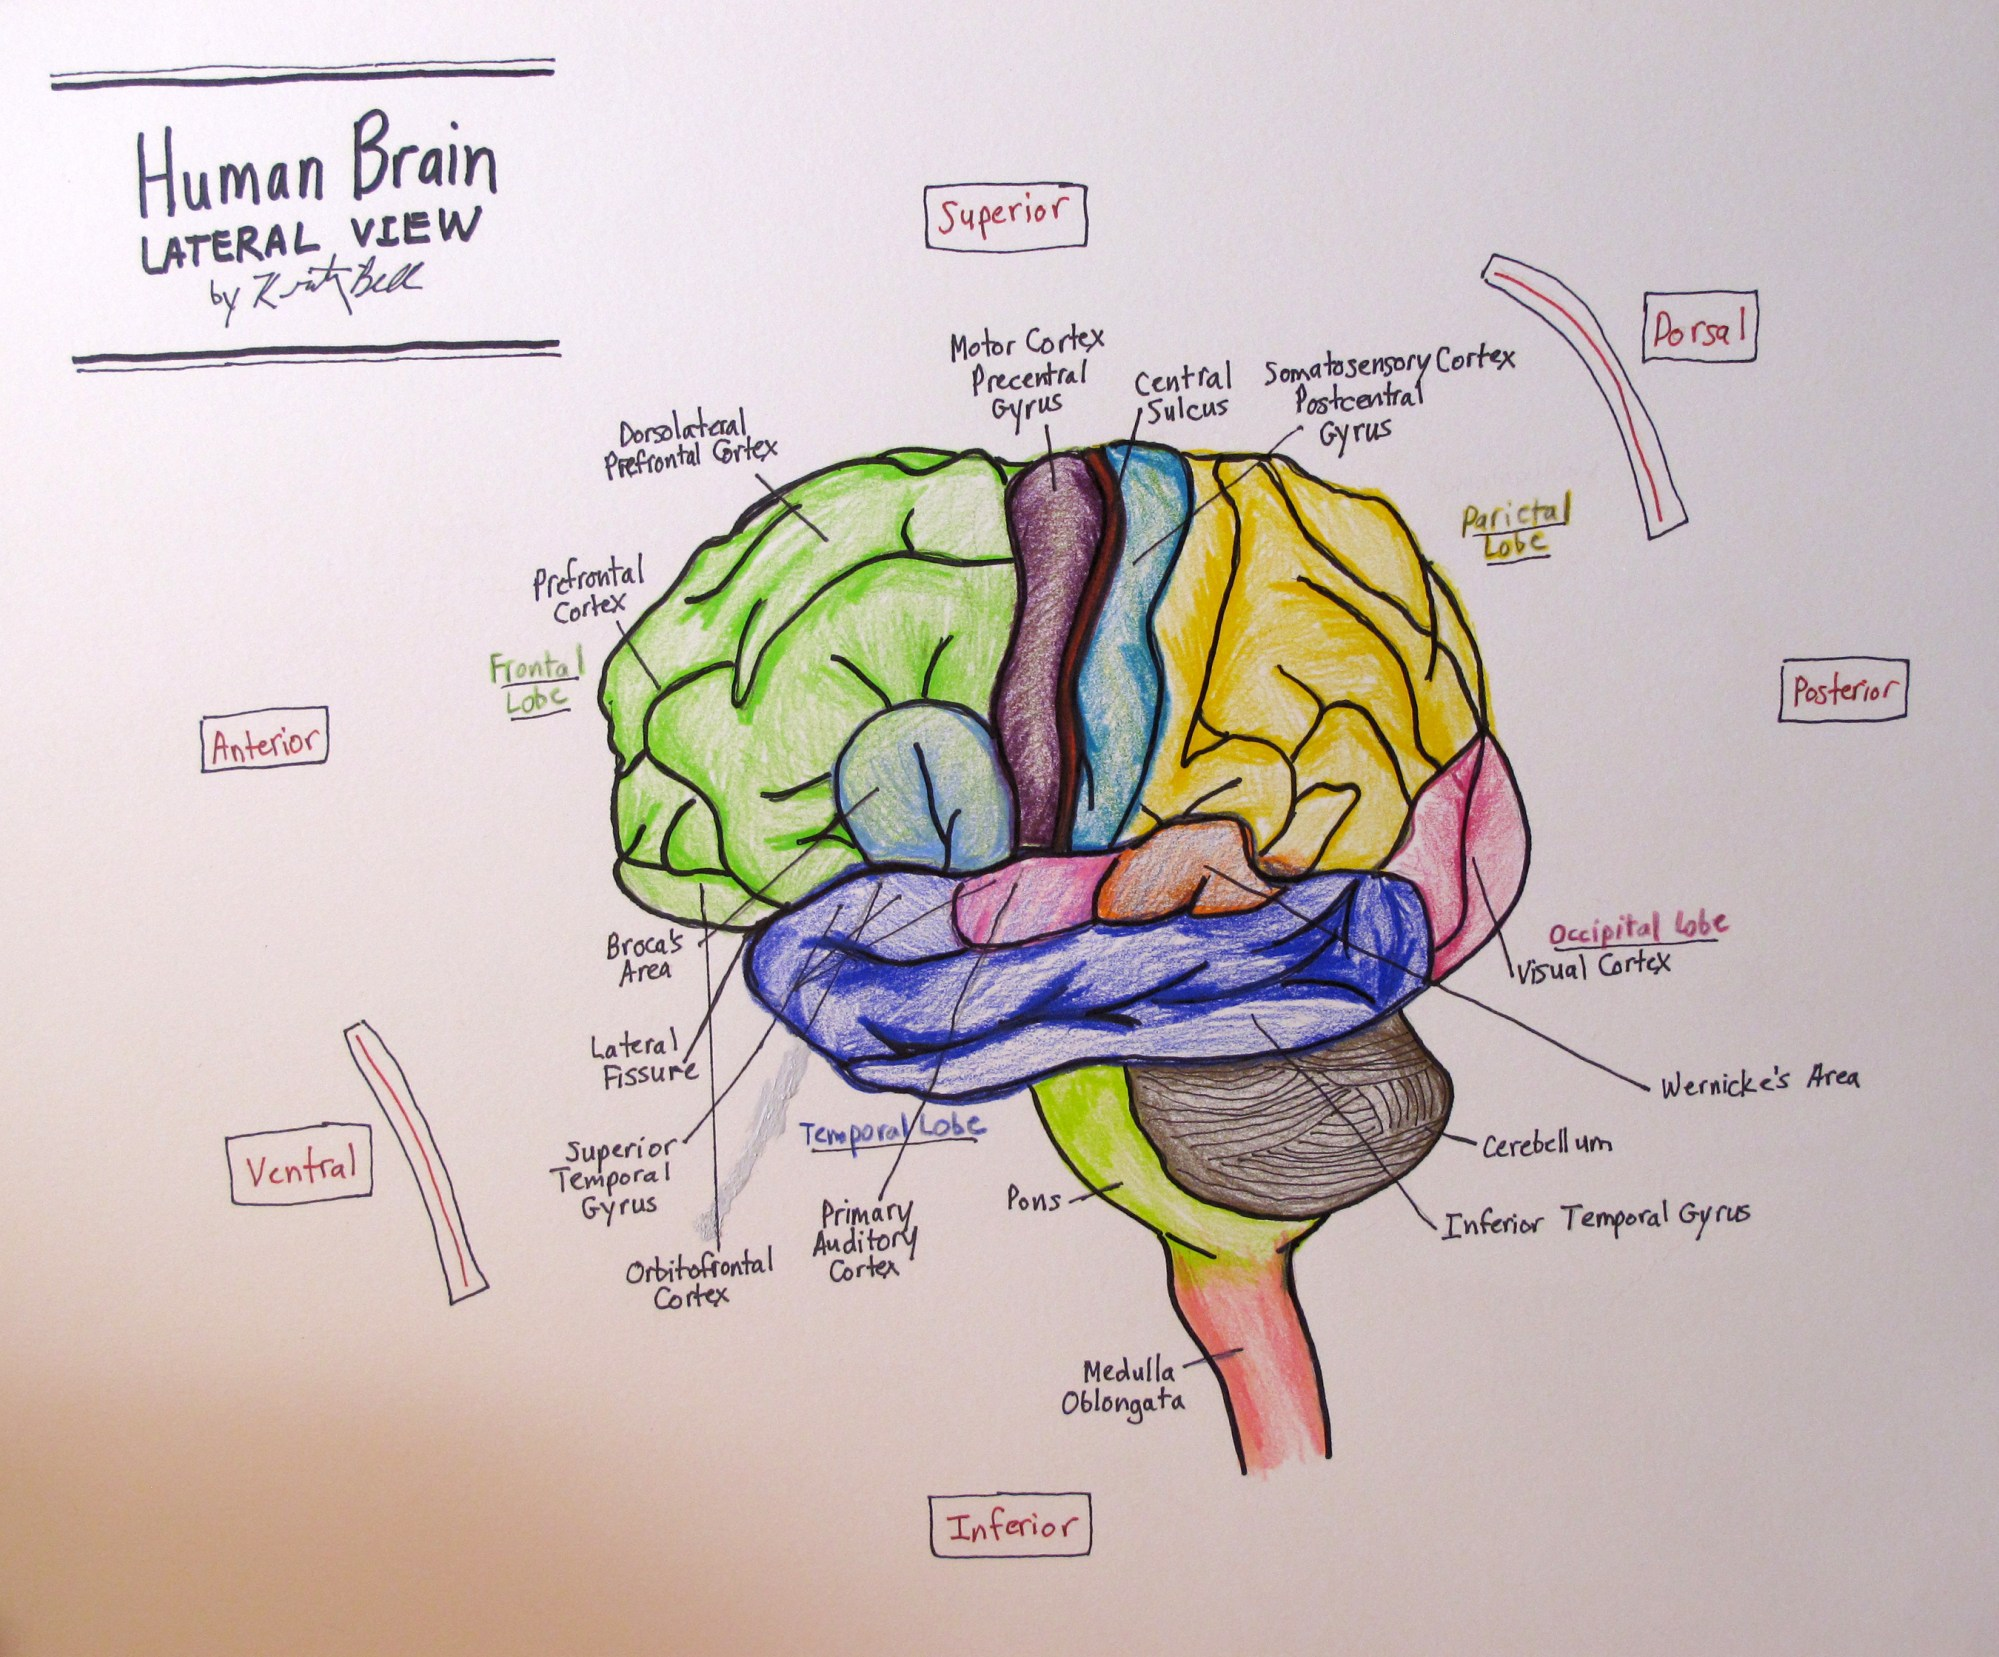 hight resolution of 2700x2237 human brain drawing labeled human brain with labels